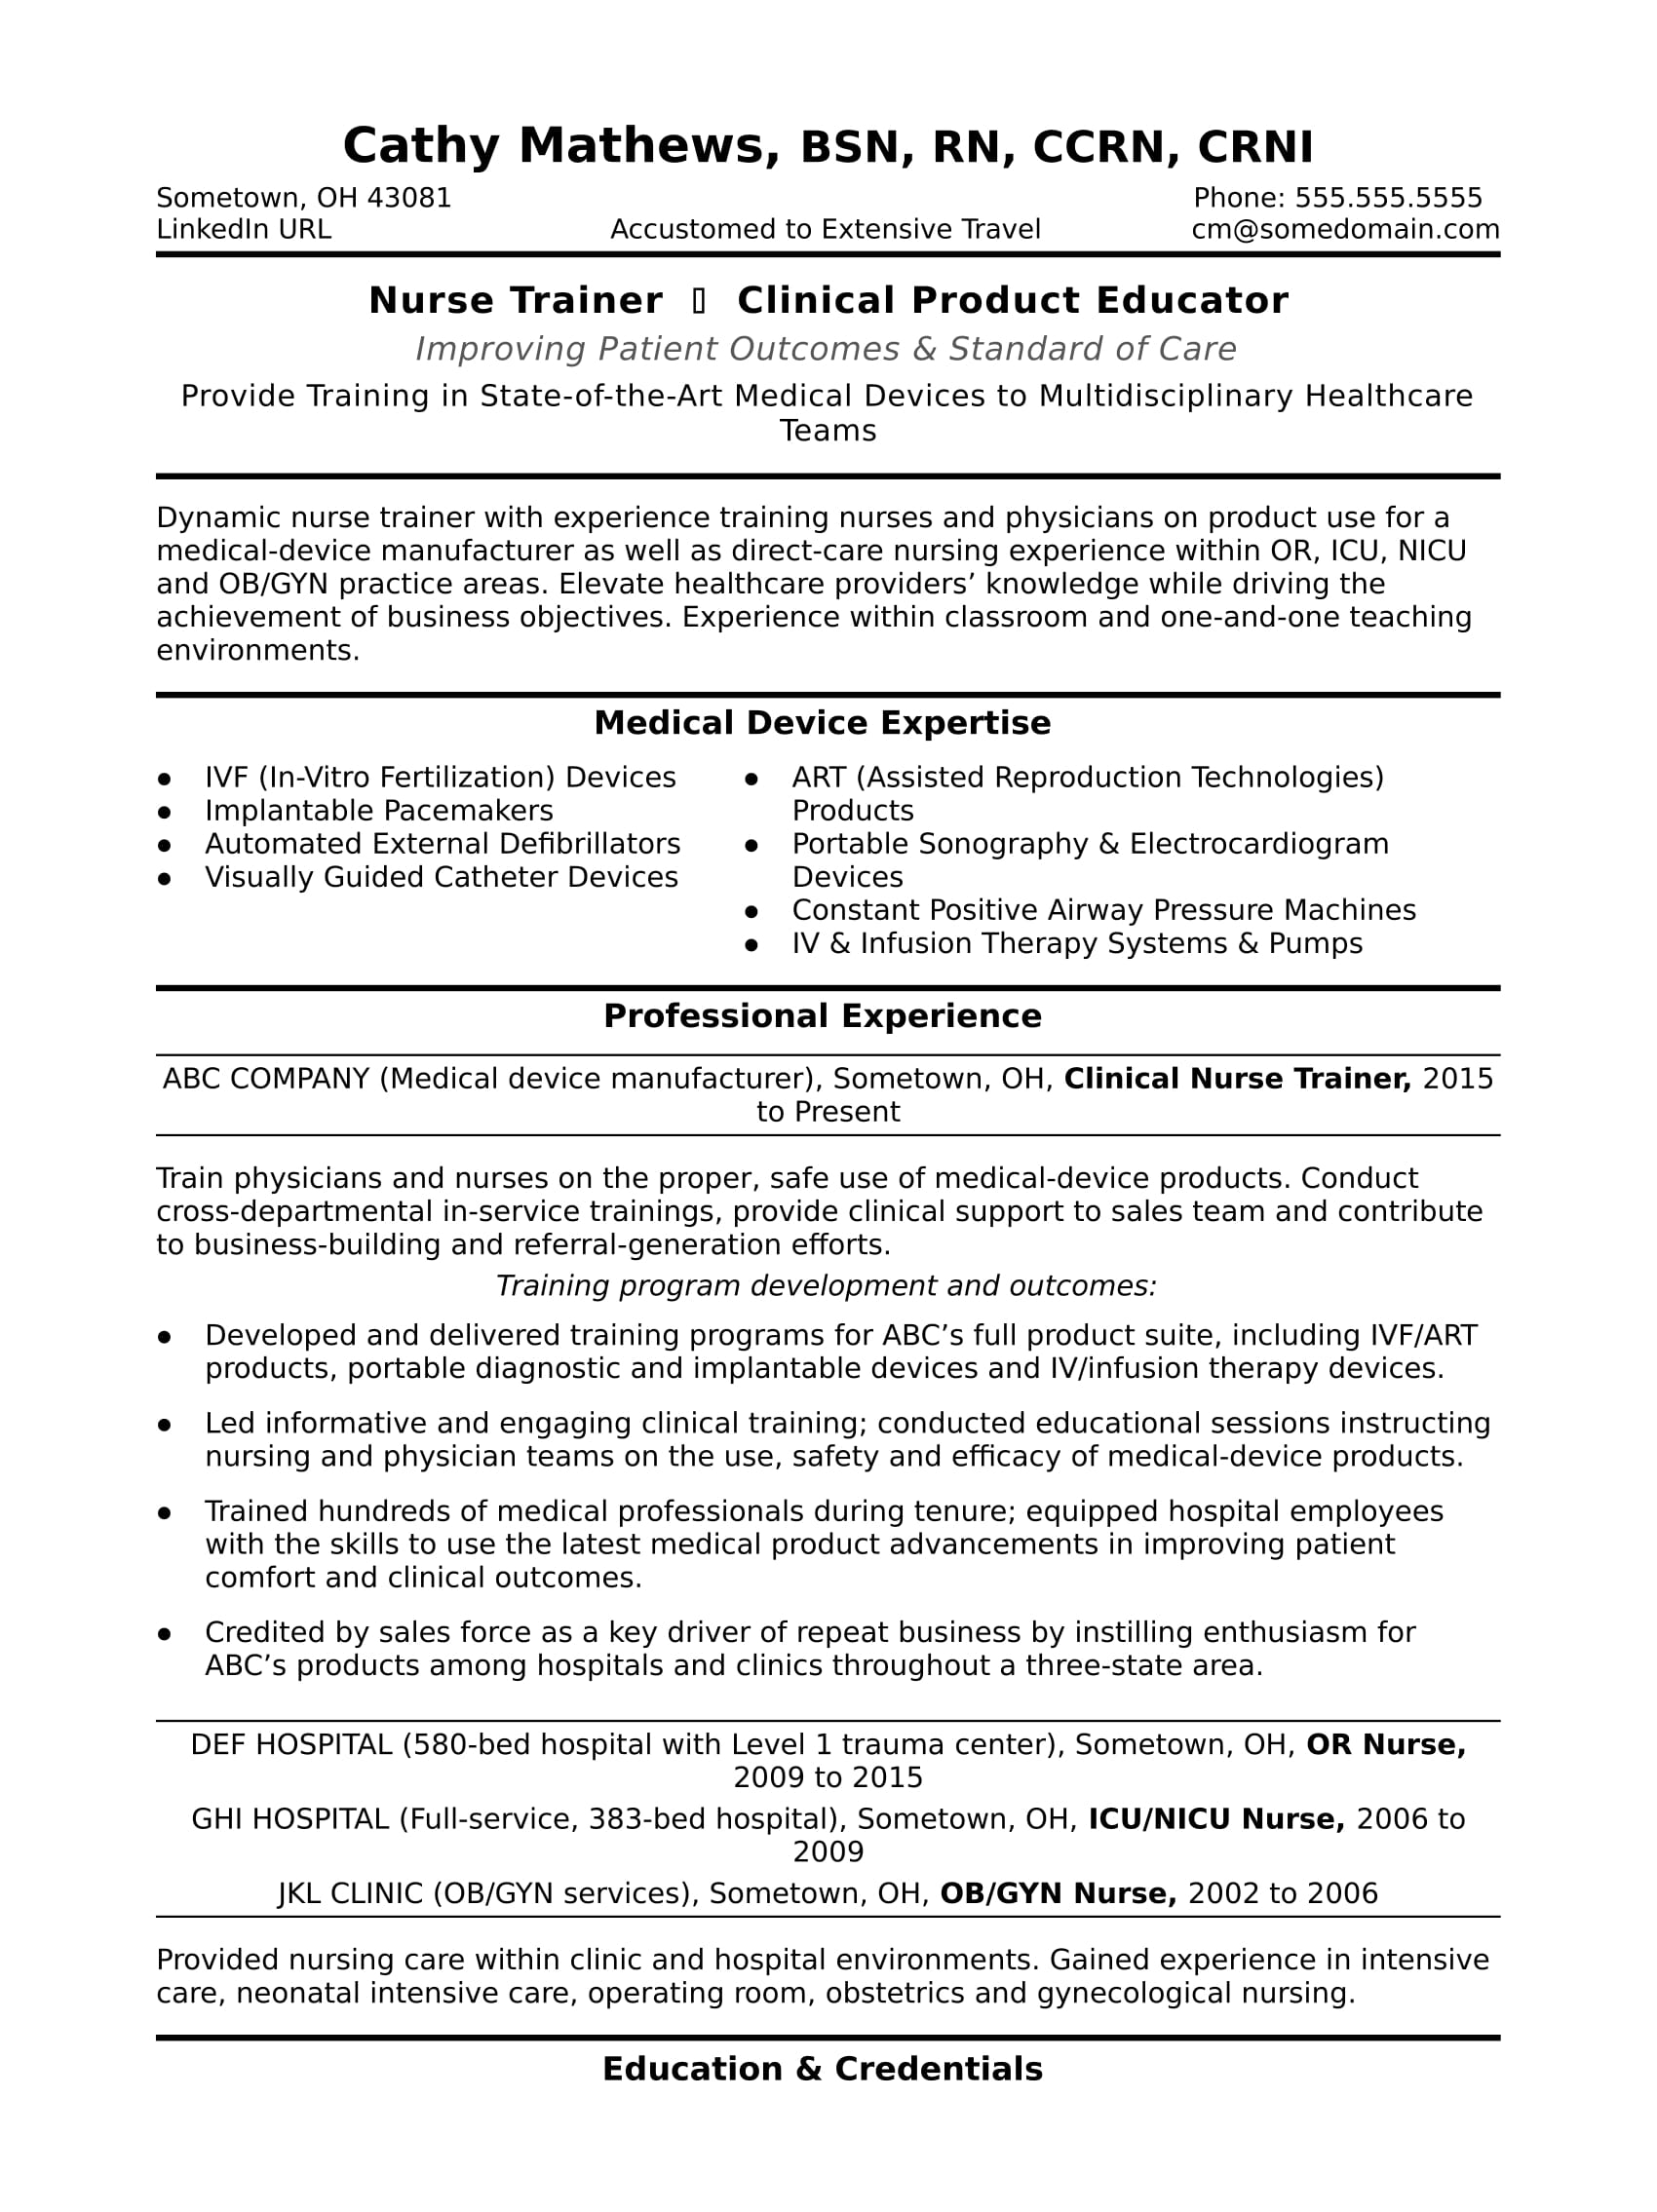 nurse trainer resume sample monster direct care objective for college work study great Resume Direct Care Resume Objective